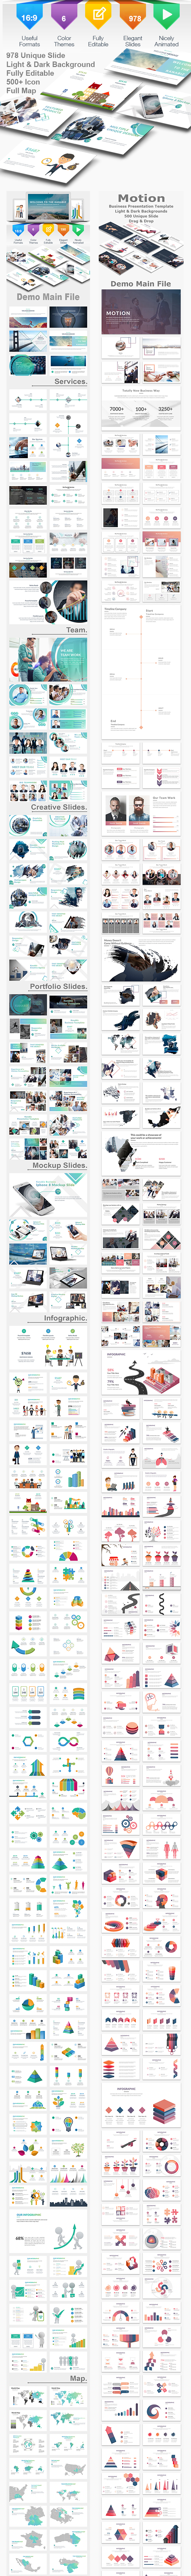 Nimm 3 - 4 in 1 Bundle Business Keynote Template - Creative Keynote Templates